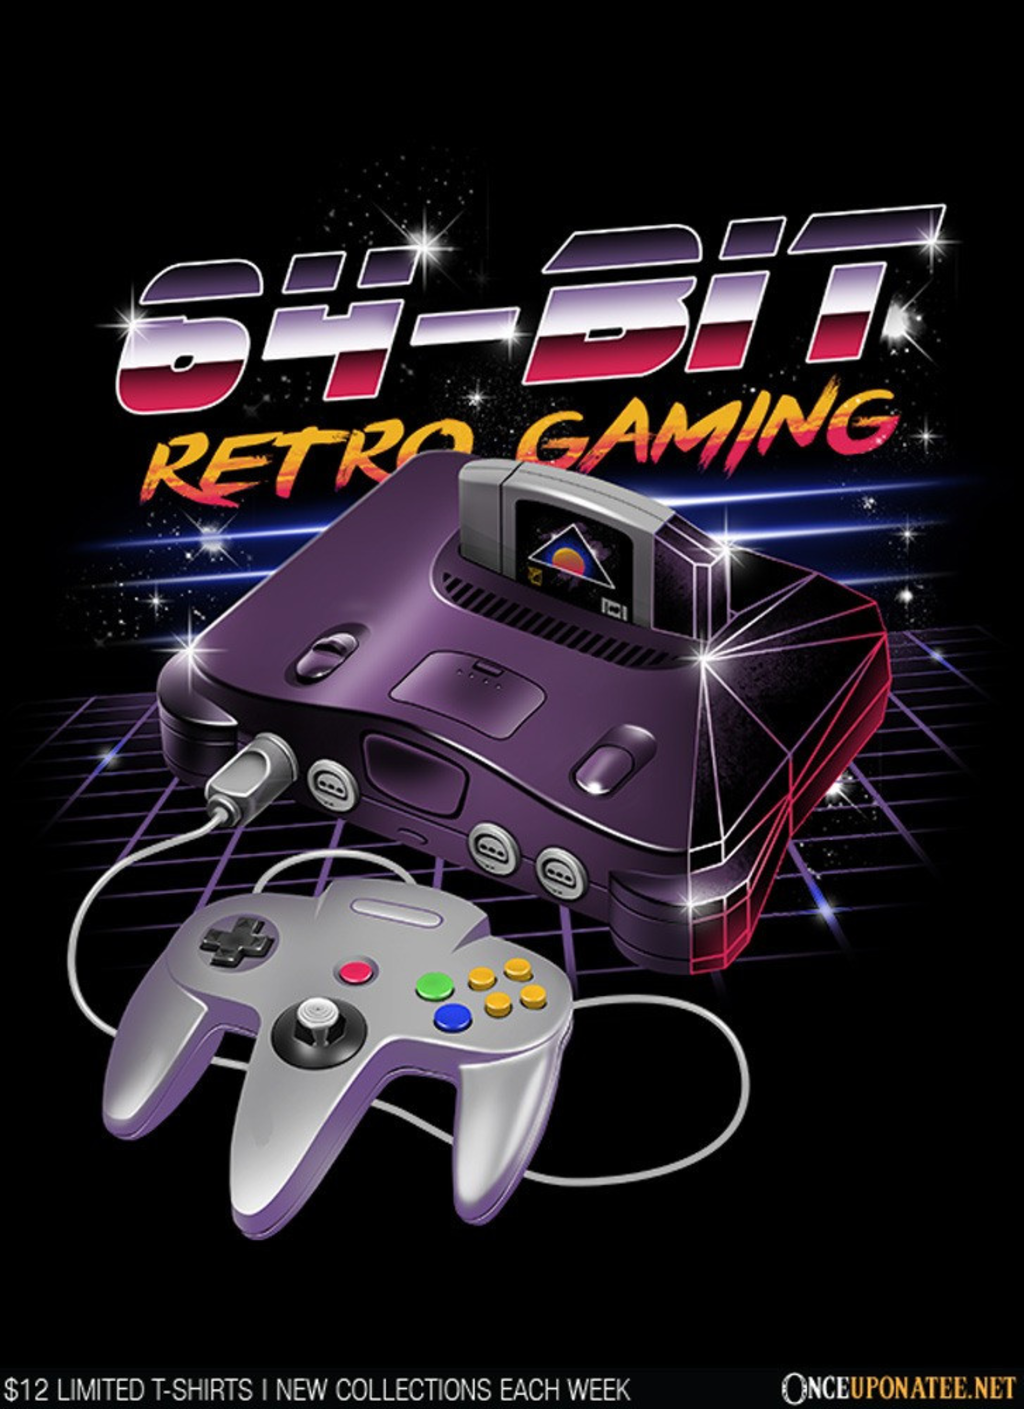 Once Upon a Tee: 64-Bit Retro Gaming